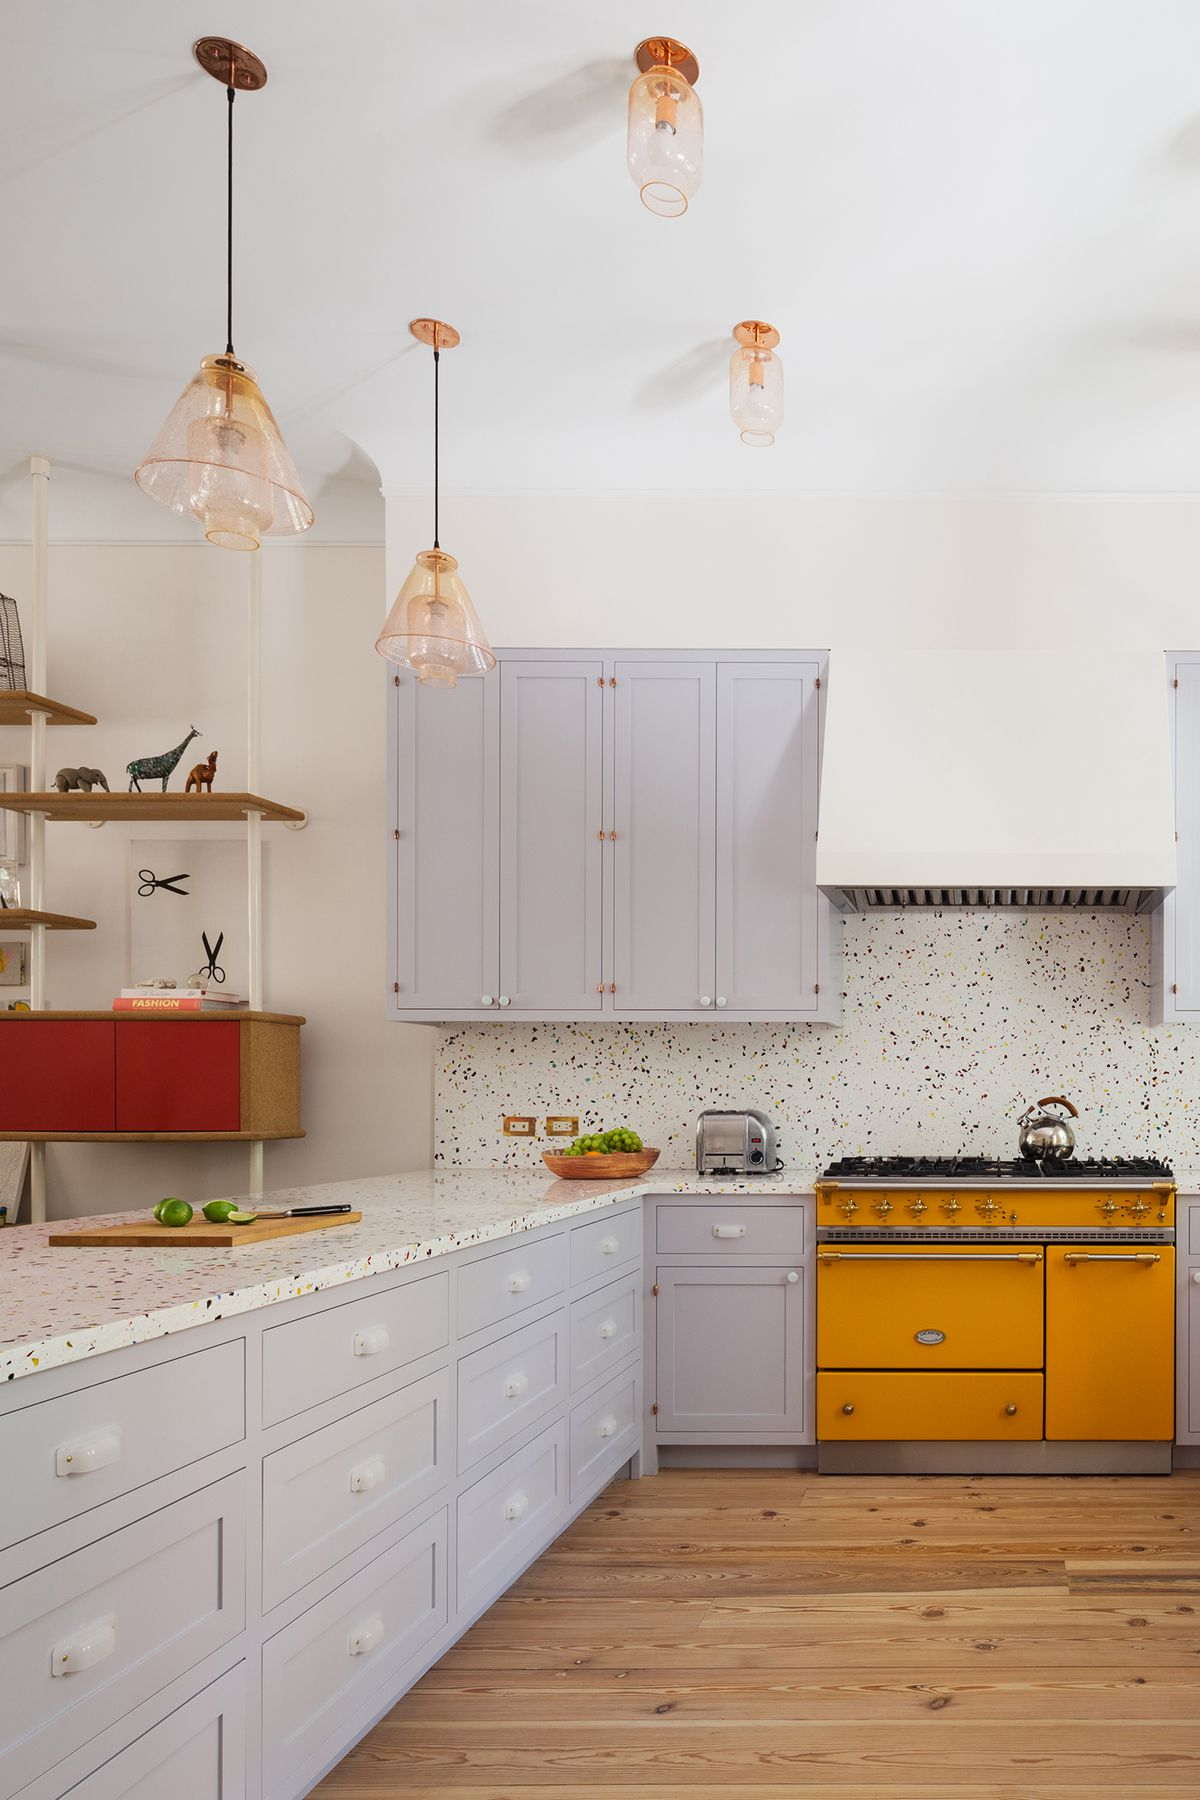 A kitchen with natural wood floors, lavender cabinets, a yellow range, and terrazzo countertops and backsplash.